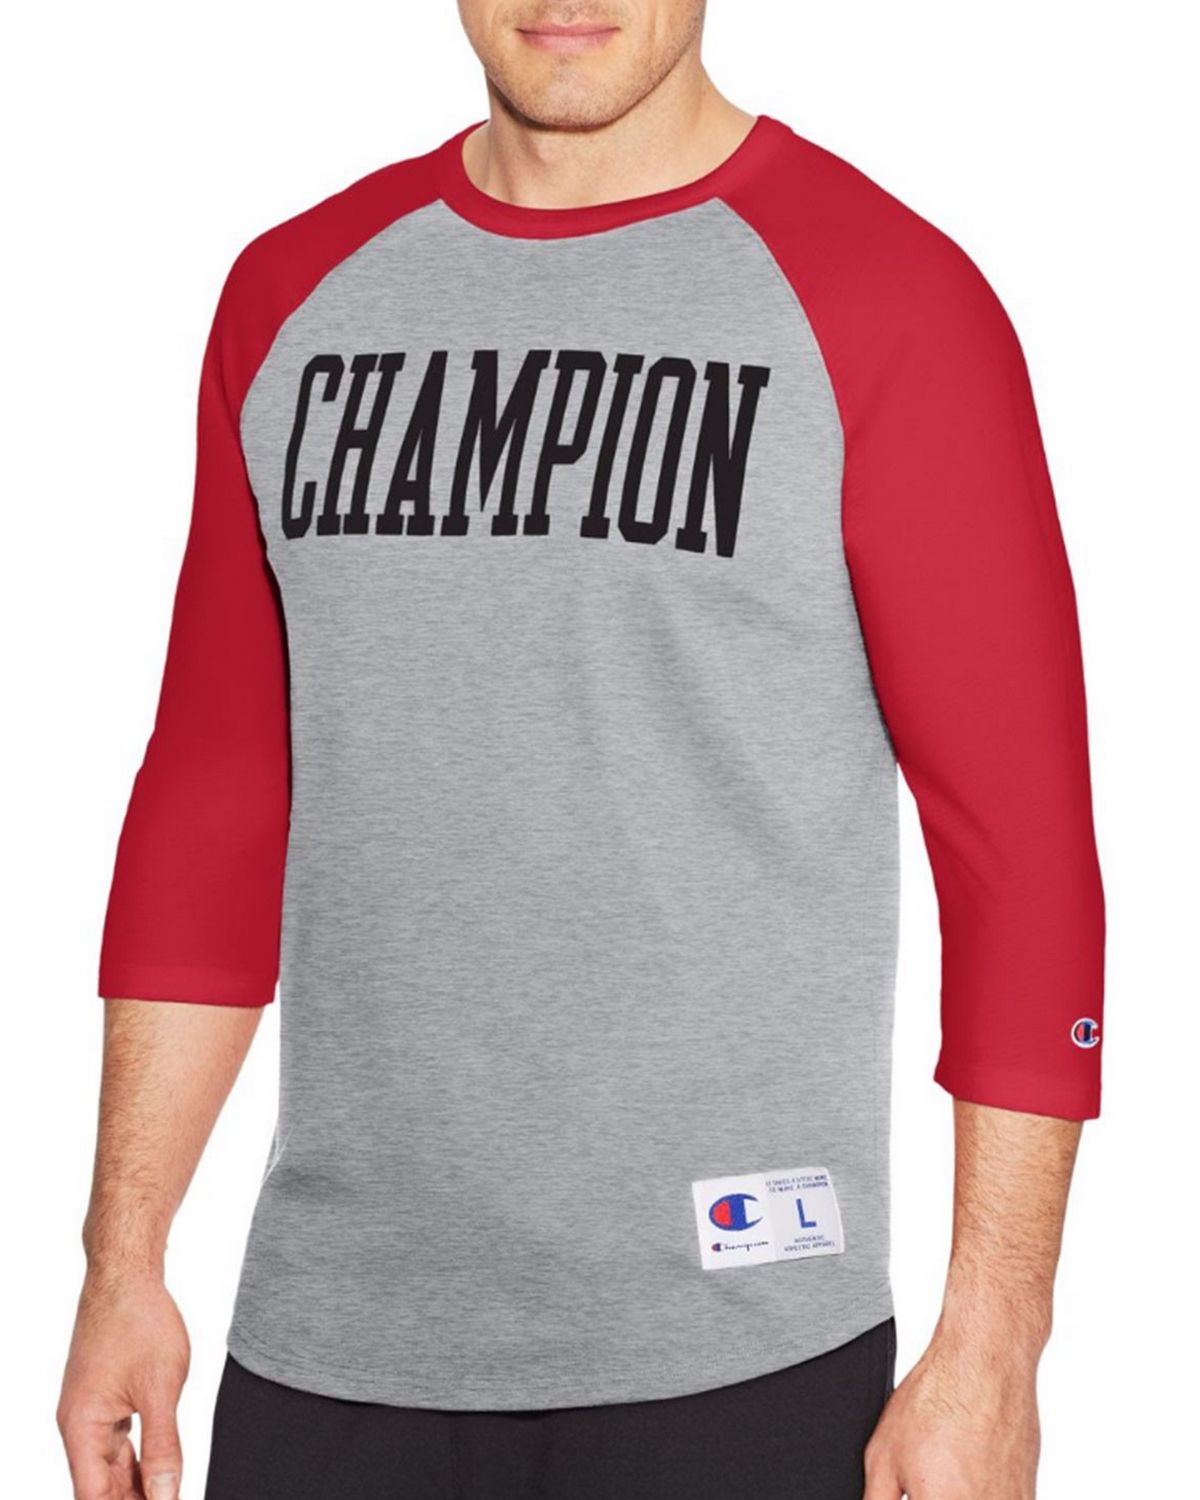 Champion T1234 Mens Slub Tee - Oxford Grey/Fire Roasted Red - L T1234